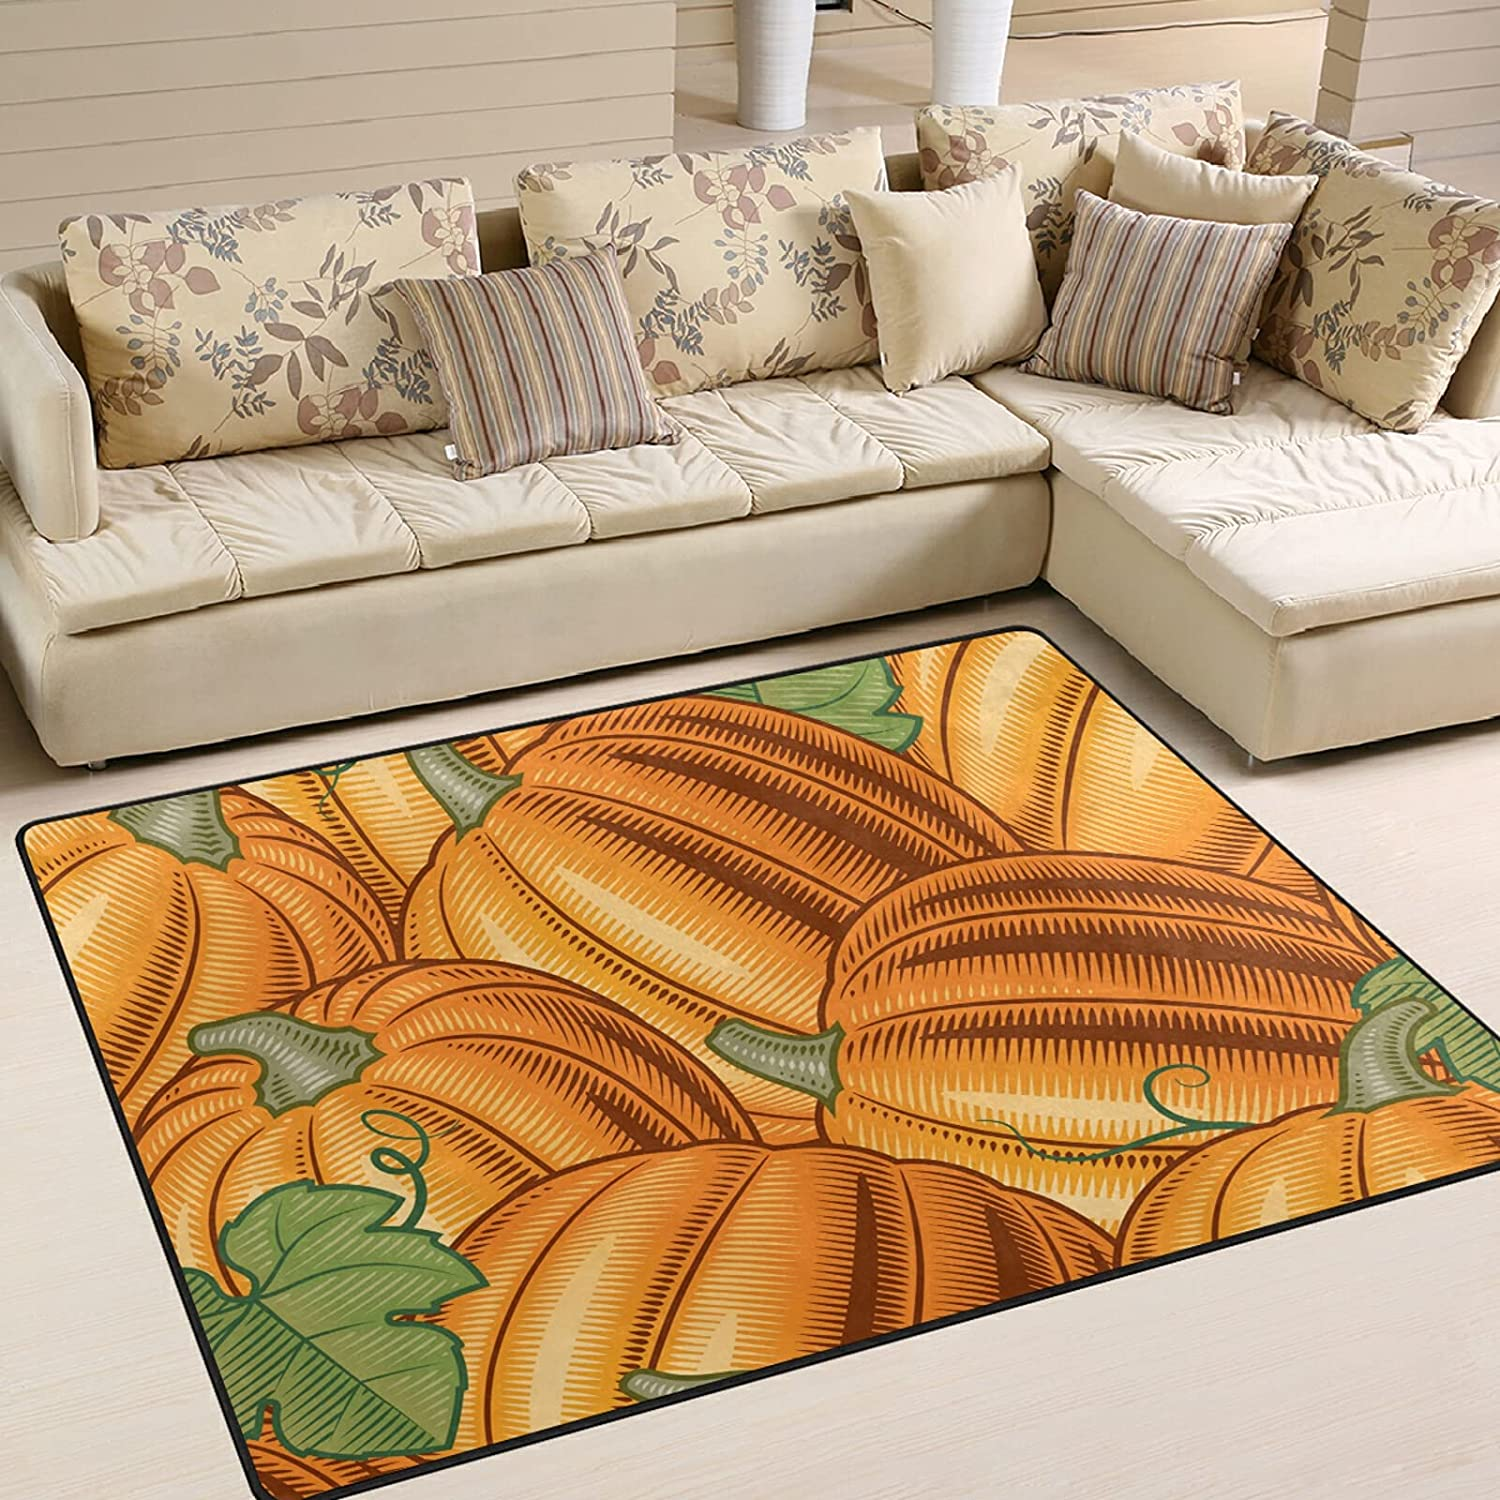 Modern Area Rugs 5x7 Al sold out. Washable Excellent - Fall Autumn Halloween So Pumpkin